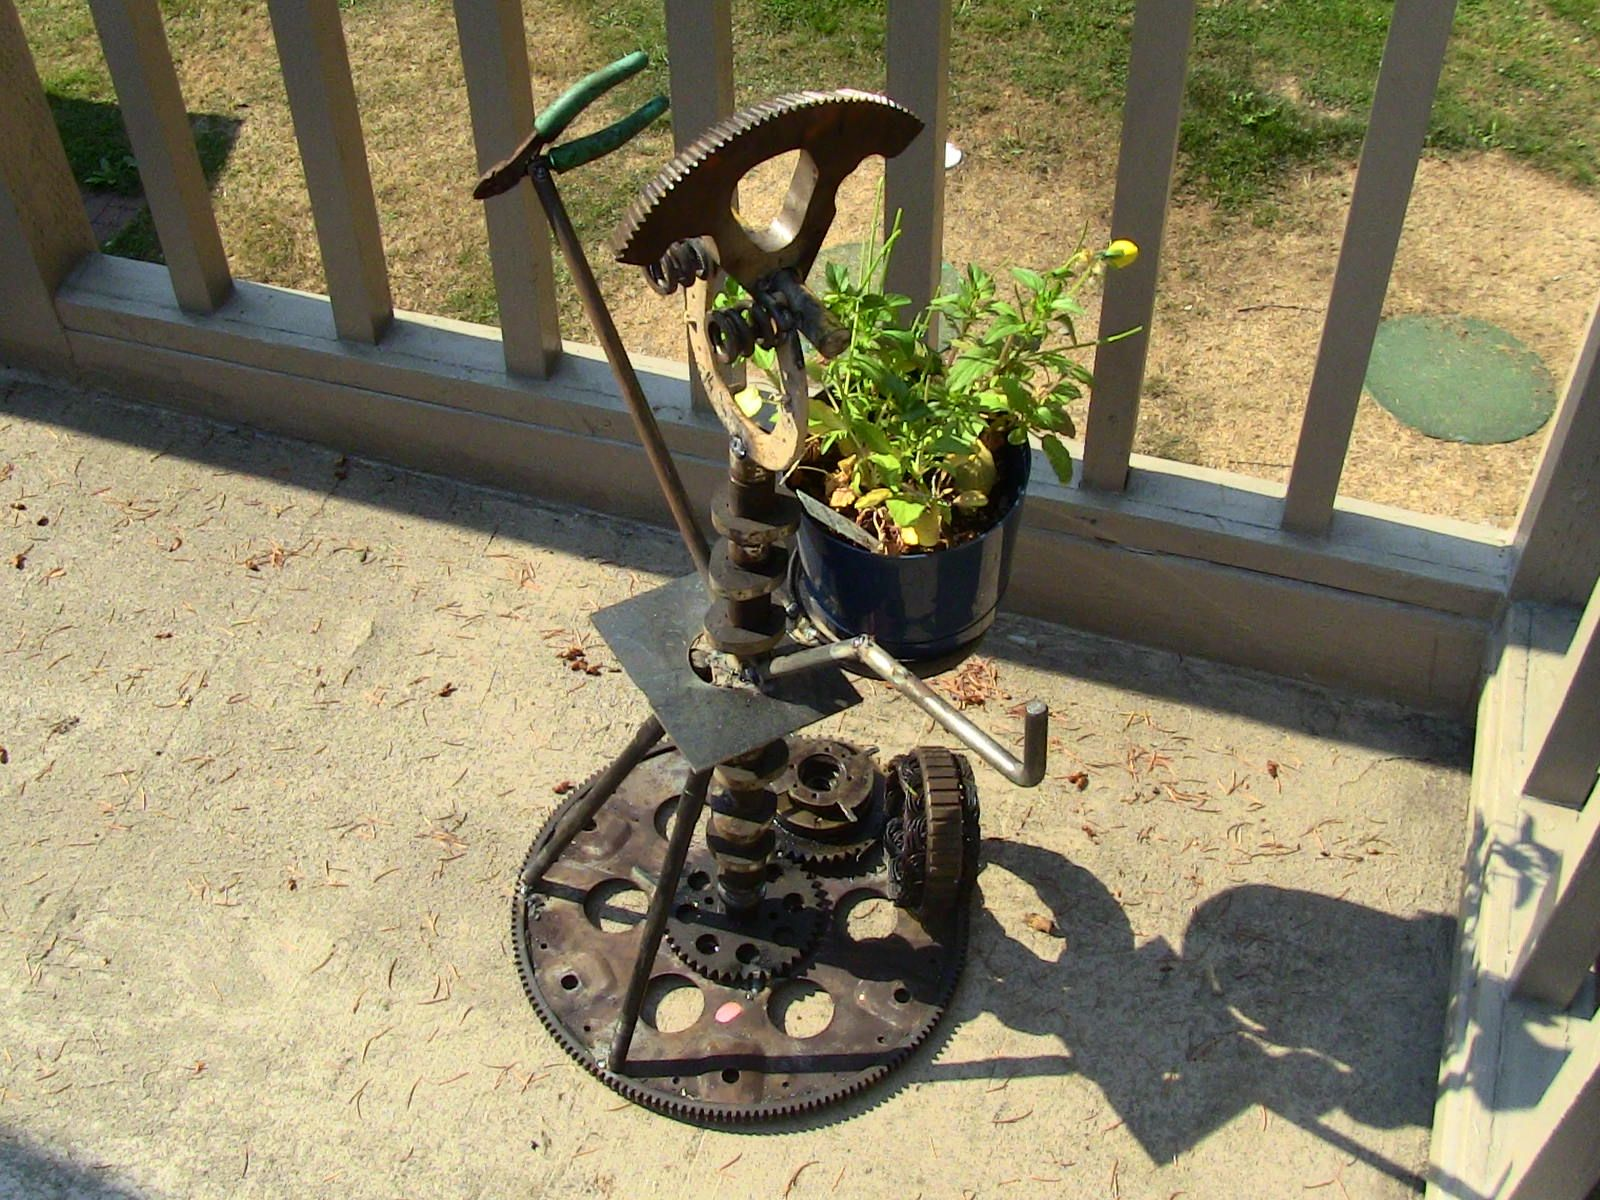 Unique Garden Junk Art | The Avant Garden: Junk Punk Metal Garden Art Welded